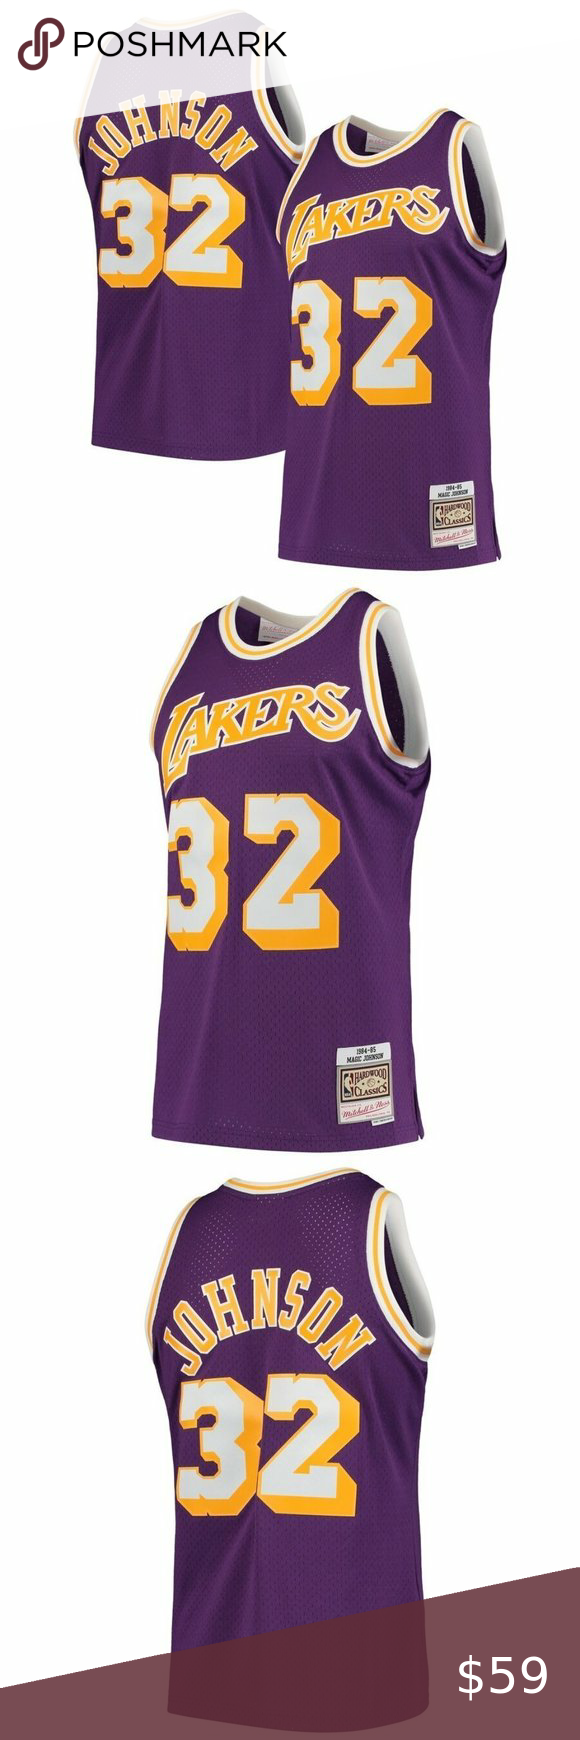 Nba Nike Los Angeles Lakers Magic Johnson 32 Please Place Order By Visiting Our Online Store Nbaonsale Com Los Angeles Lakers Game Day Shirts Magic Johnson